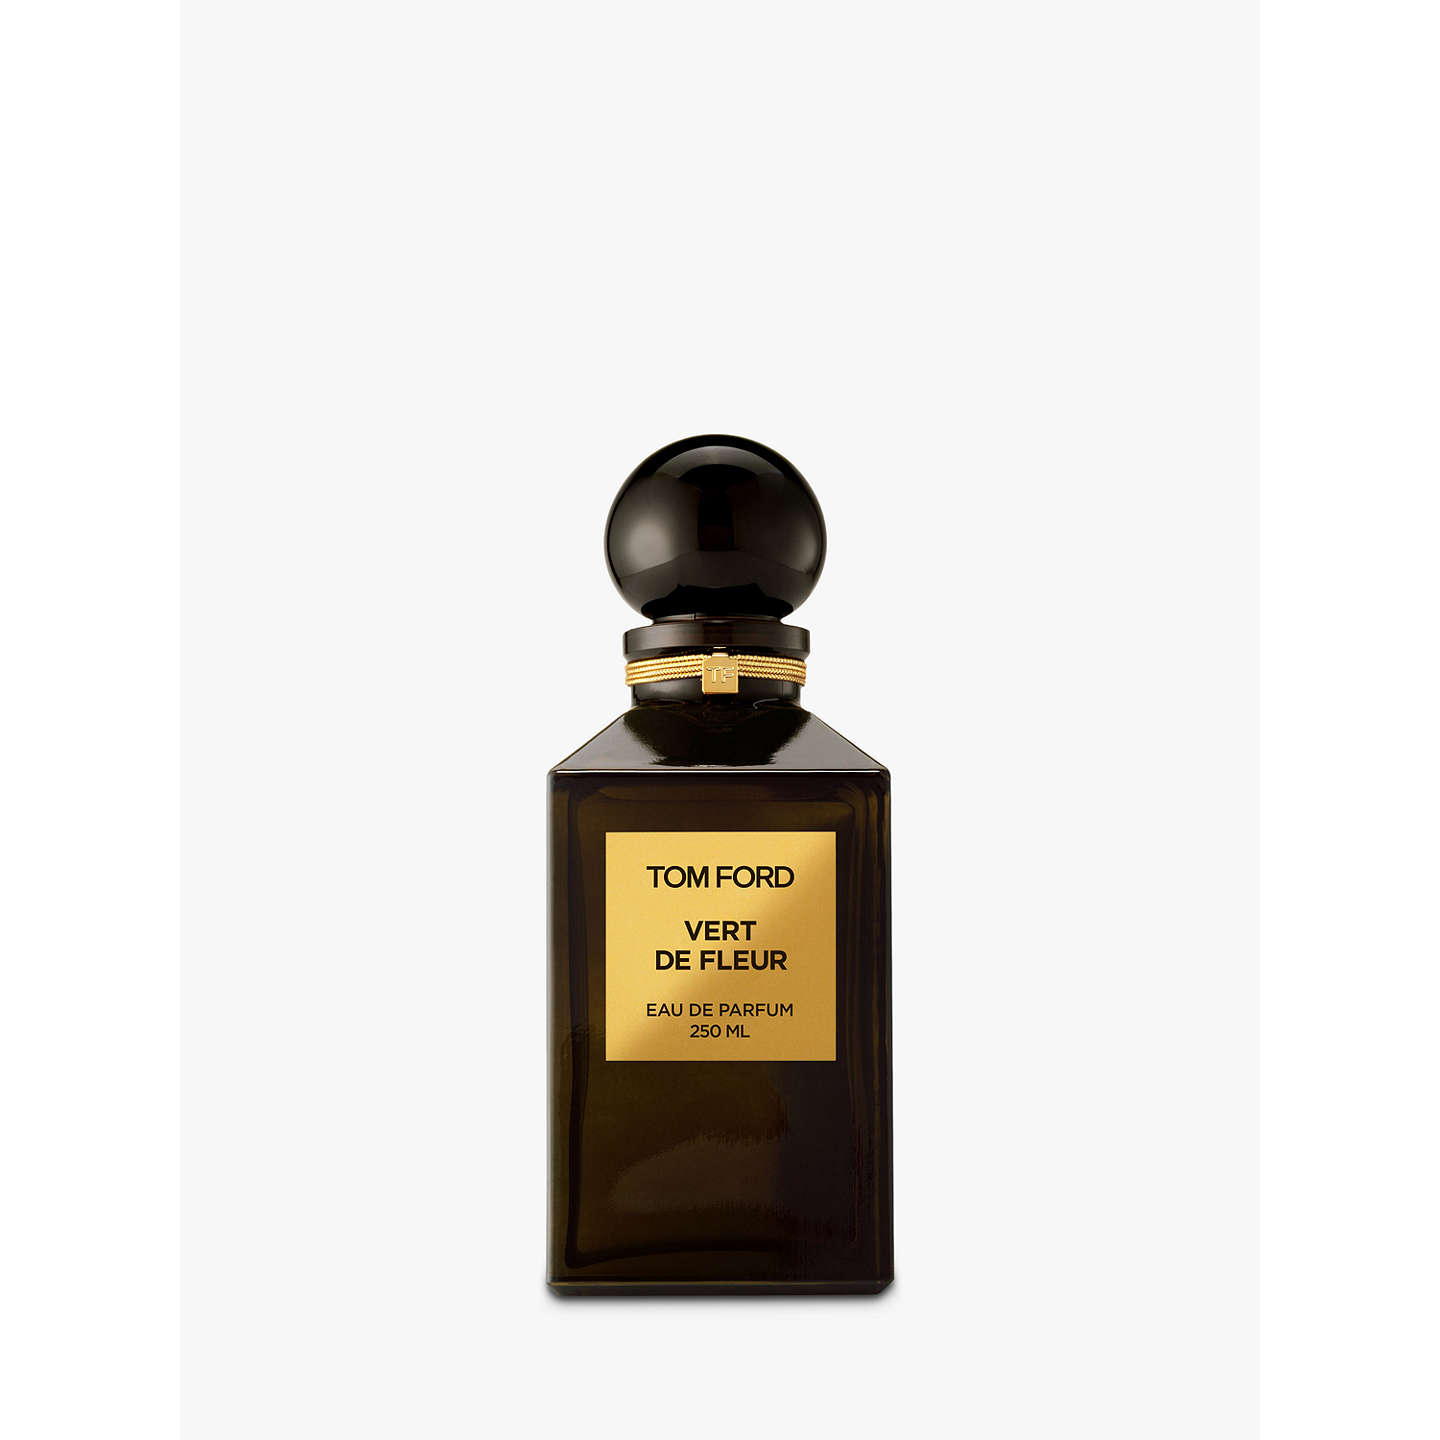 BuyTOM FORD Private Blend Vert de Fleur Eau de Parfum, 250ml Online at johnlewis.com